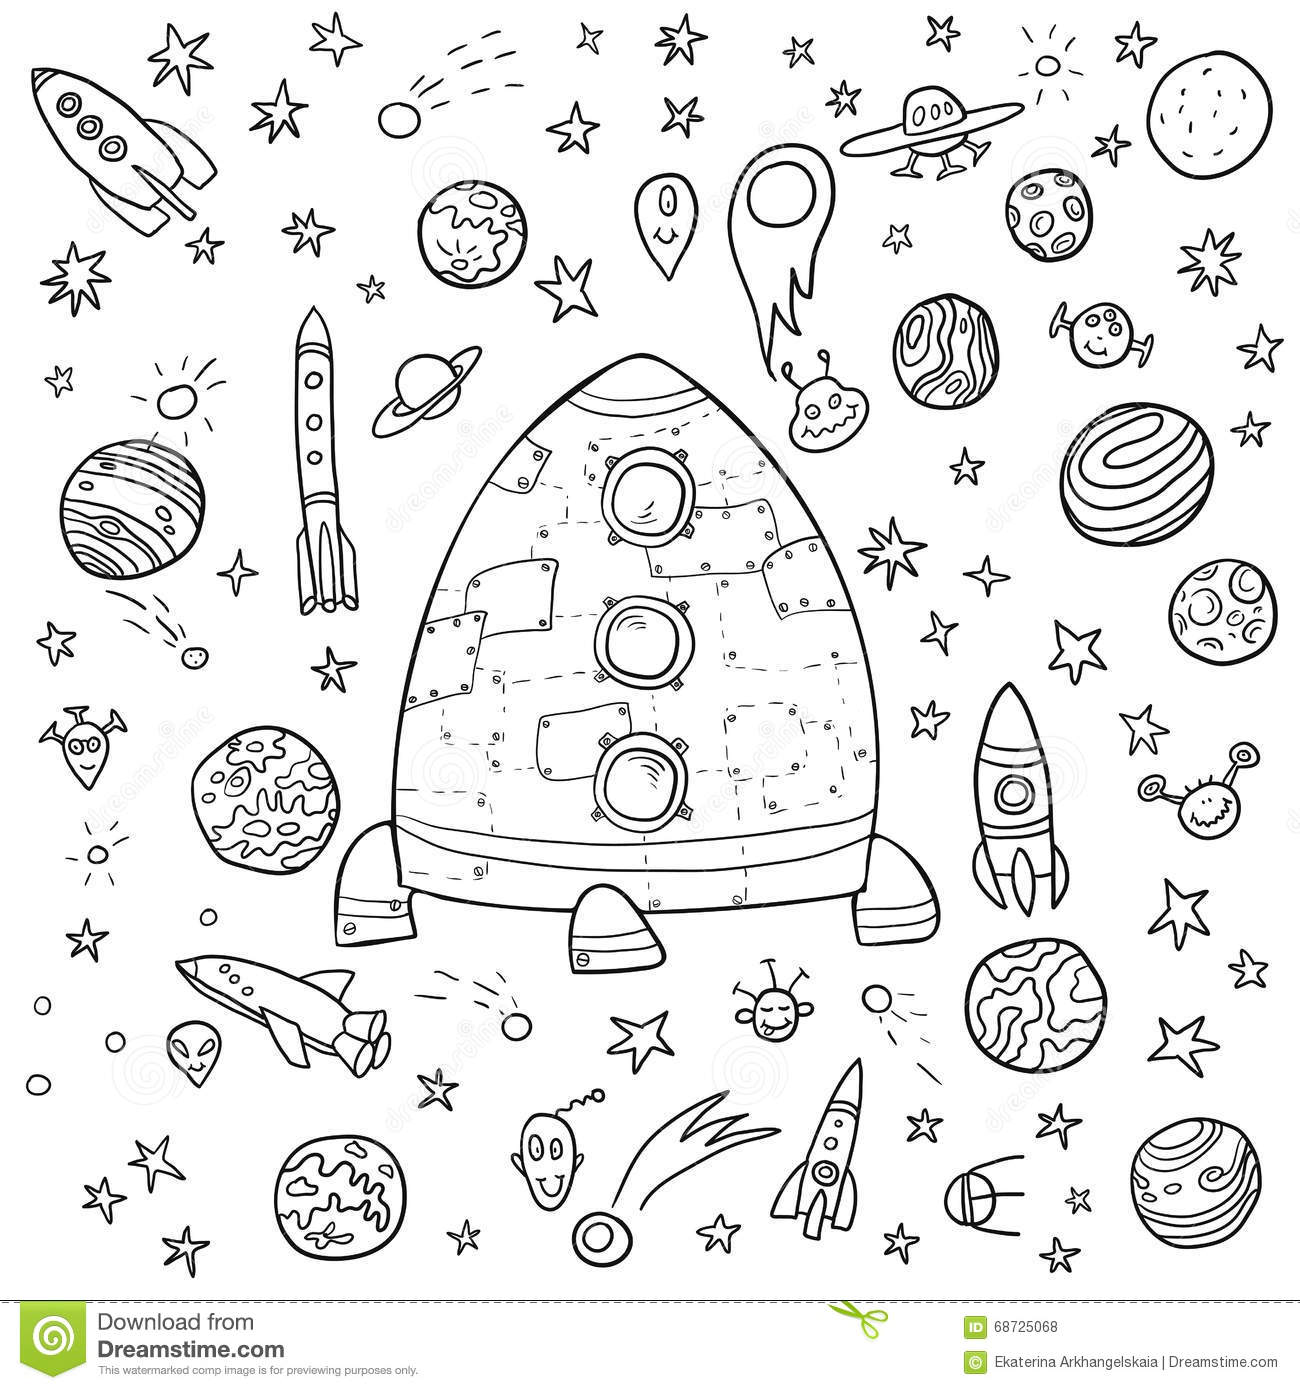 big space doodle set stock vector image of fantasy auto electricalbig space doodle set stock vector image of fantasy